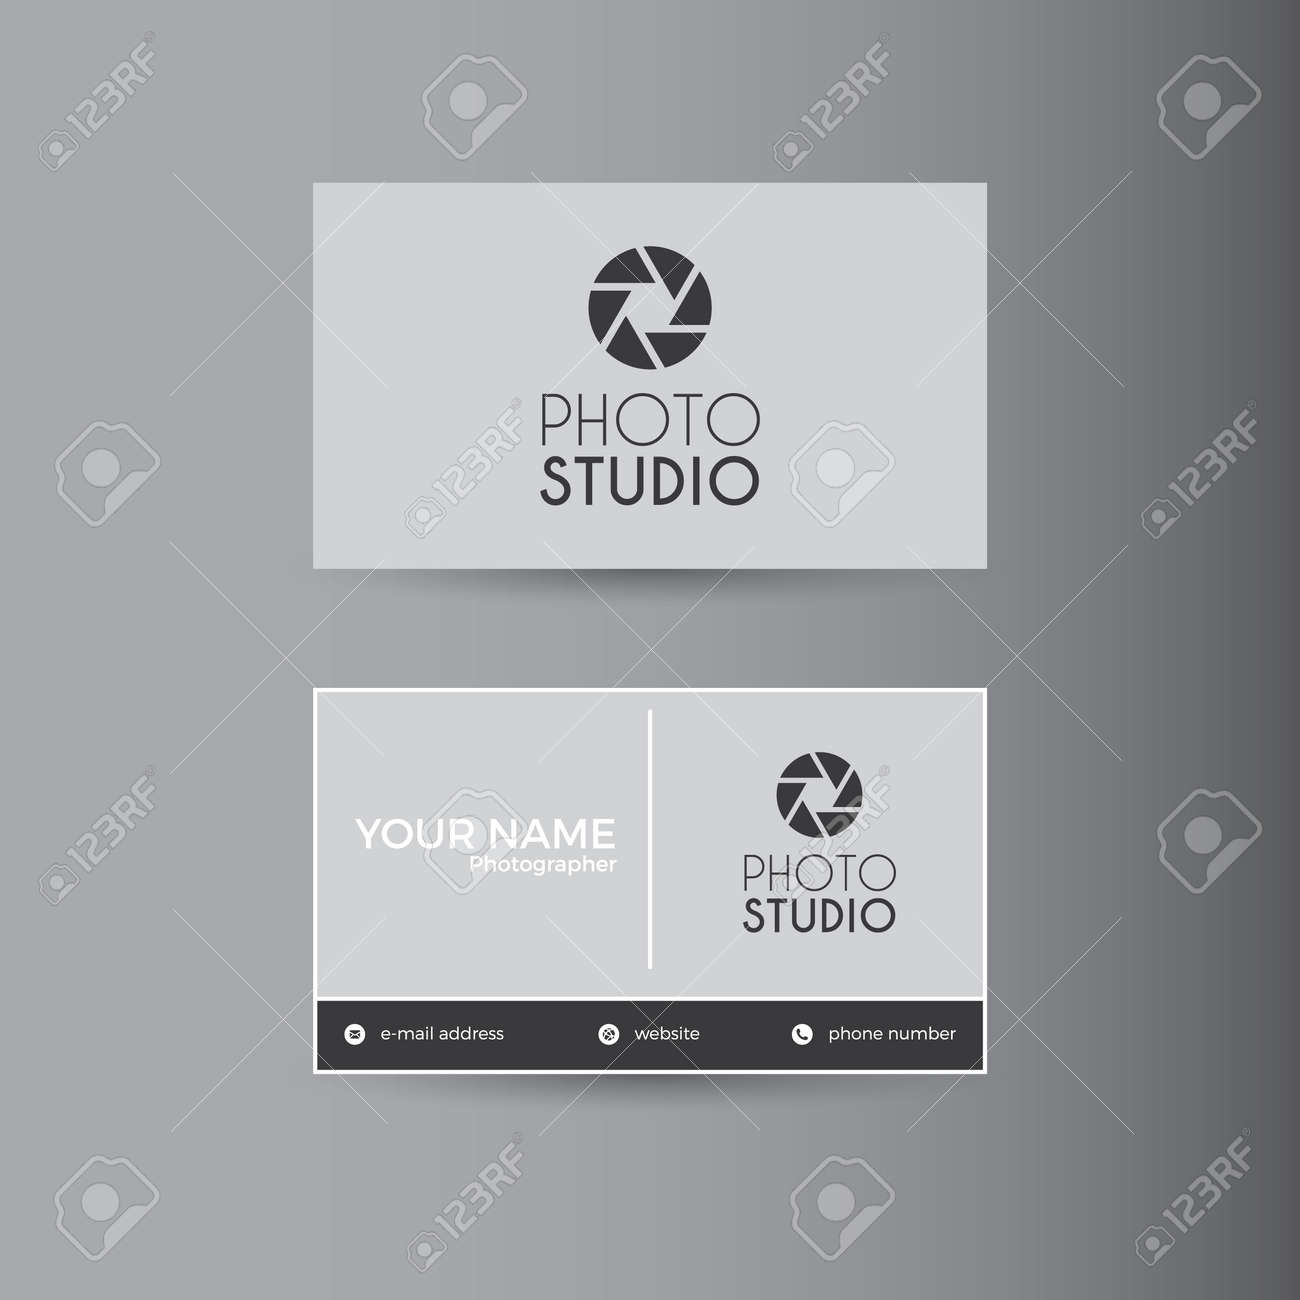 Simple template for photography business card royalty free cliparts simple template for photography business card stock vector 72911058 wajeb Gallery